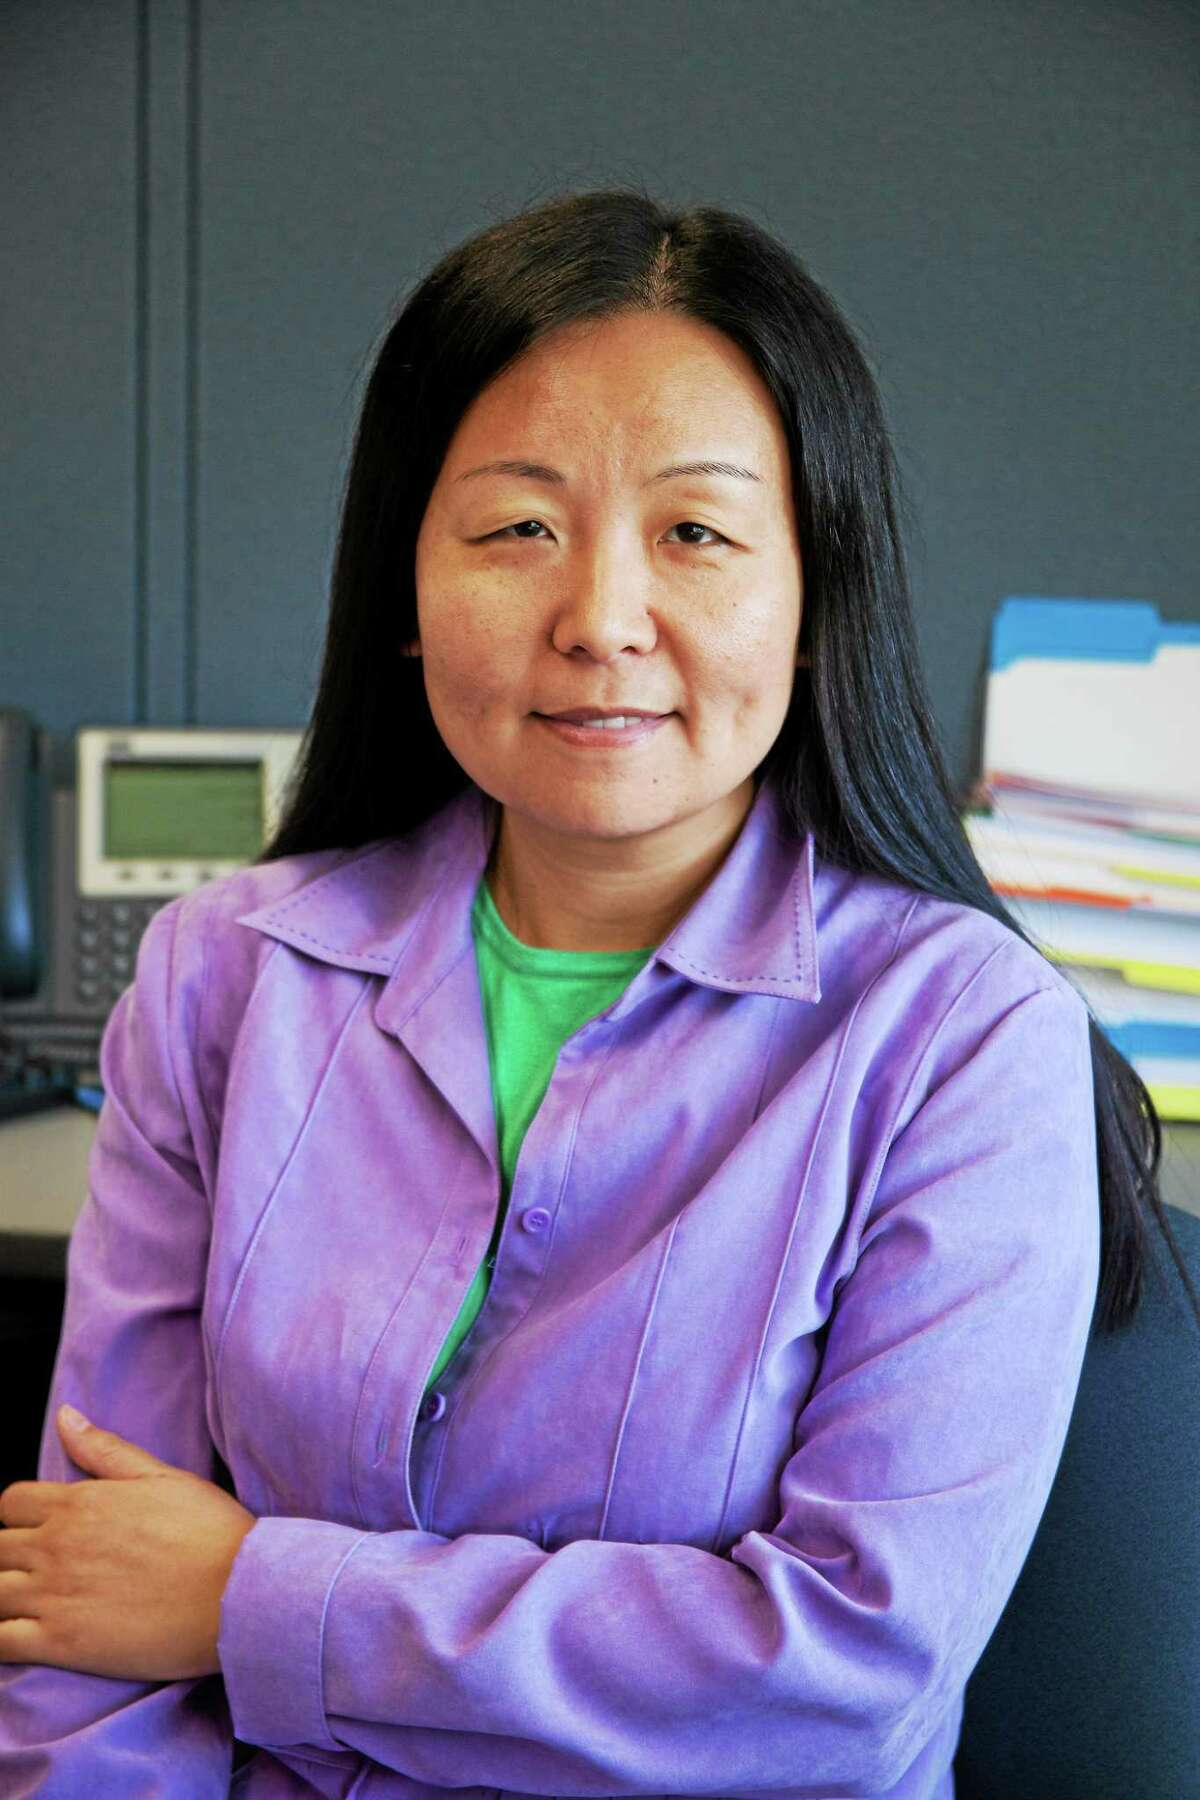 Assistant professor and coordinator of the Computer Engineering Technology program and the Engineering Science Program at Middlesex Community College in Middletown, Dr. Lin Lin